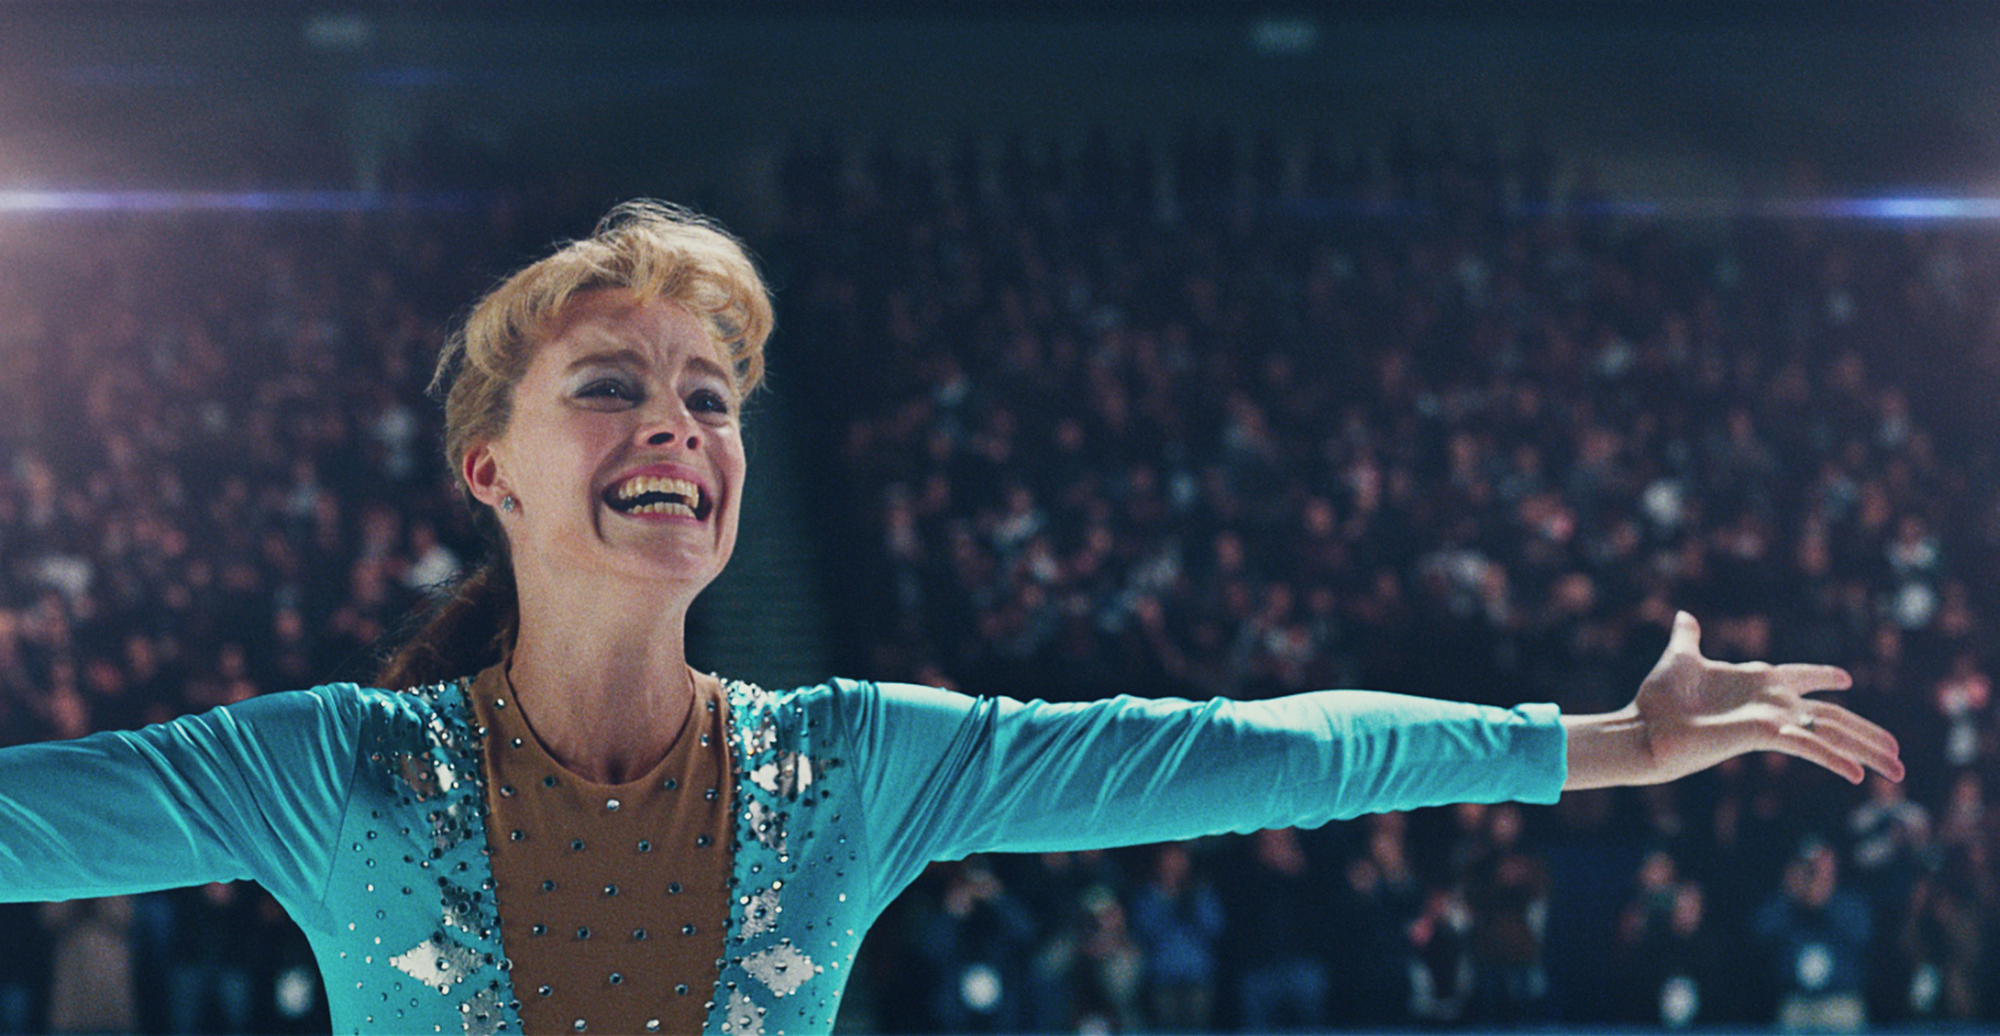 F:PHOTOMediaFactory ActionsRequests DropBox48334#neon1- Tonya Harding (Margot Robbie) after landing the triple axel in I, TONYA, courtesy of NEON.tif